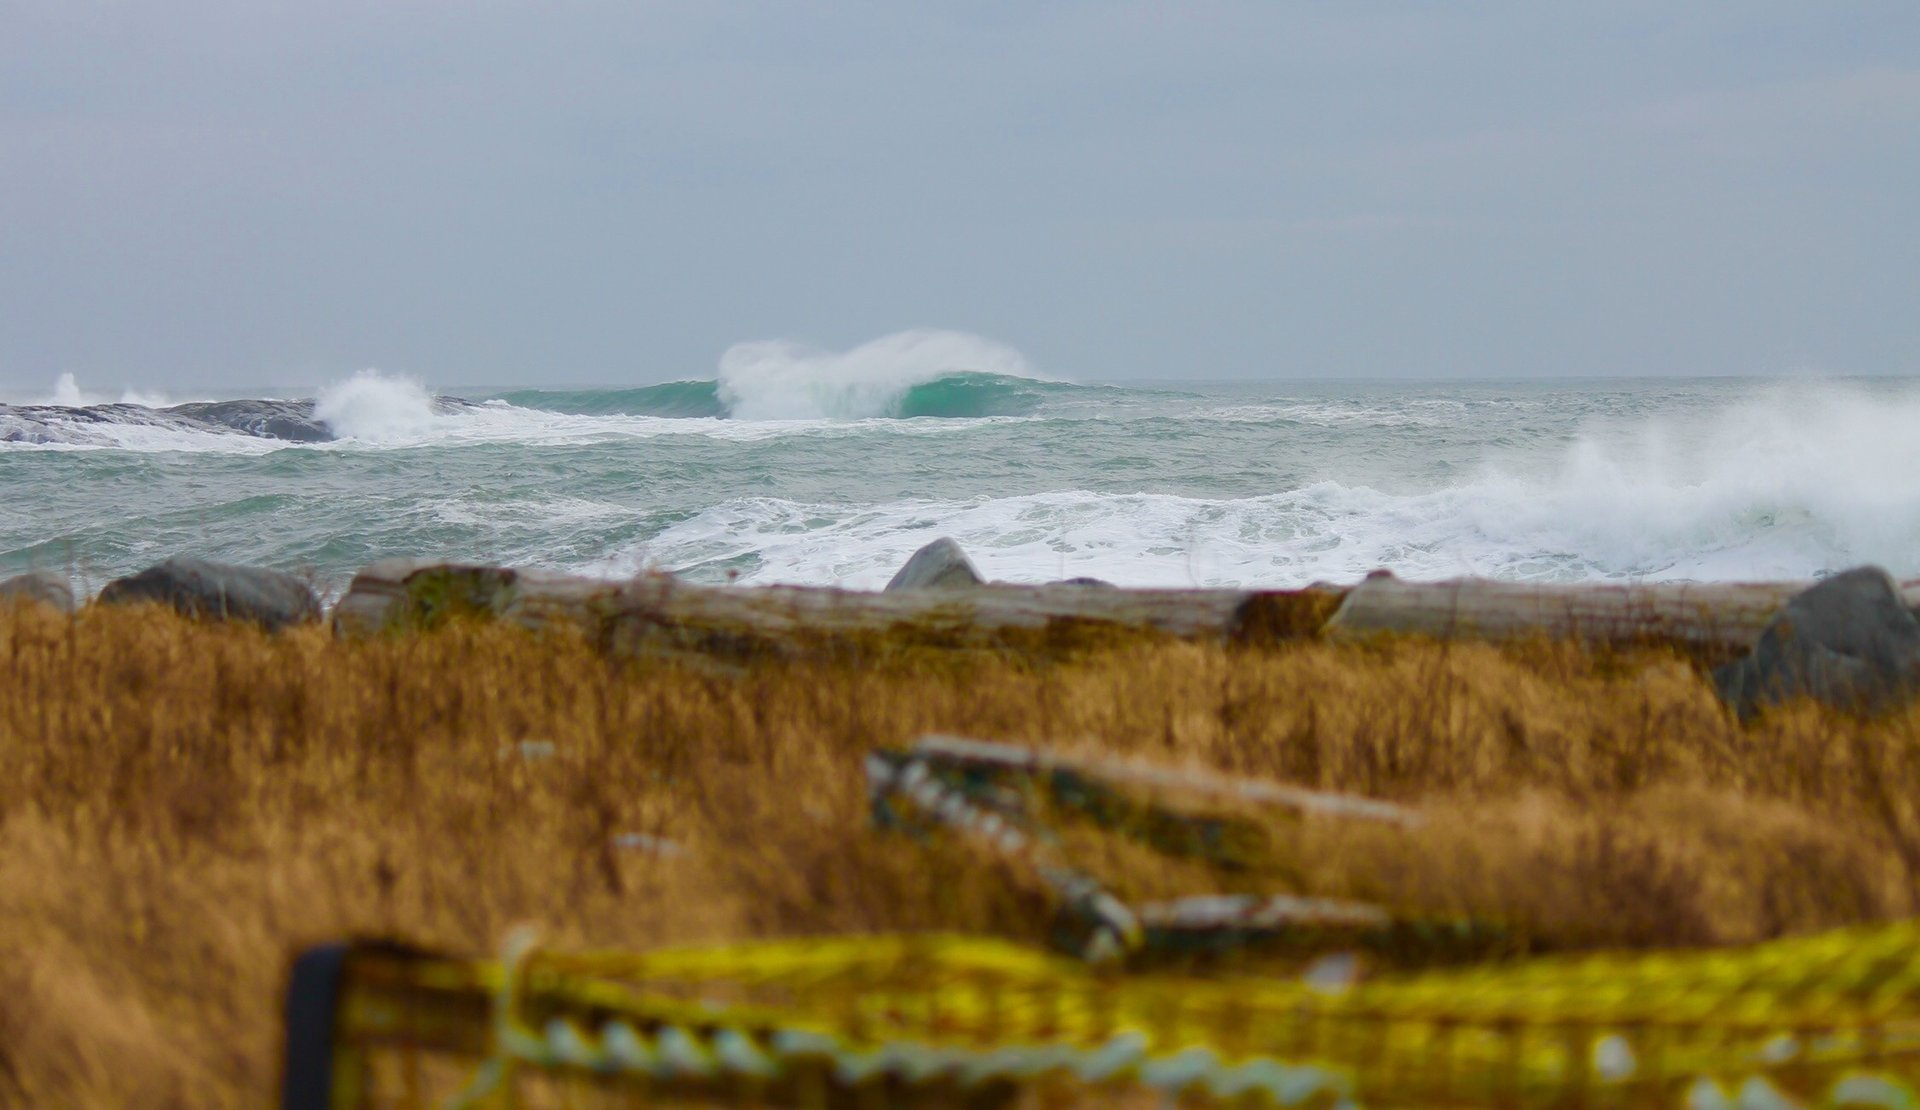 rosko's photo of Nova Scotia Hurricane